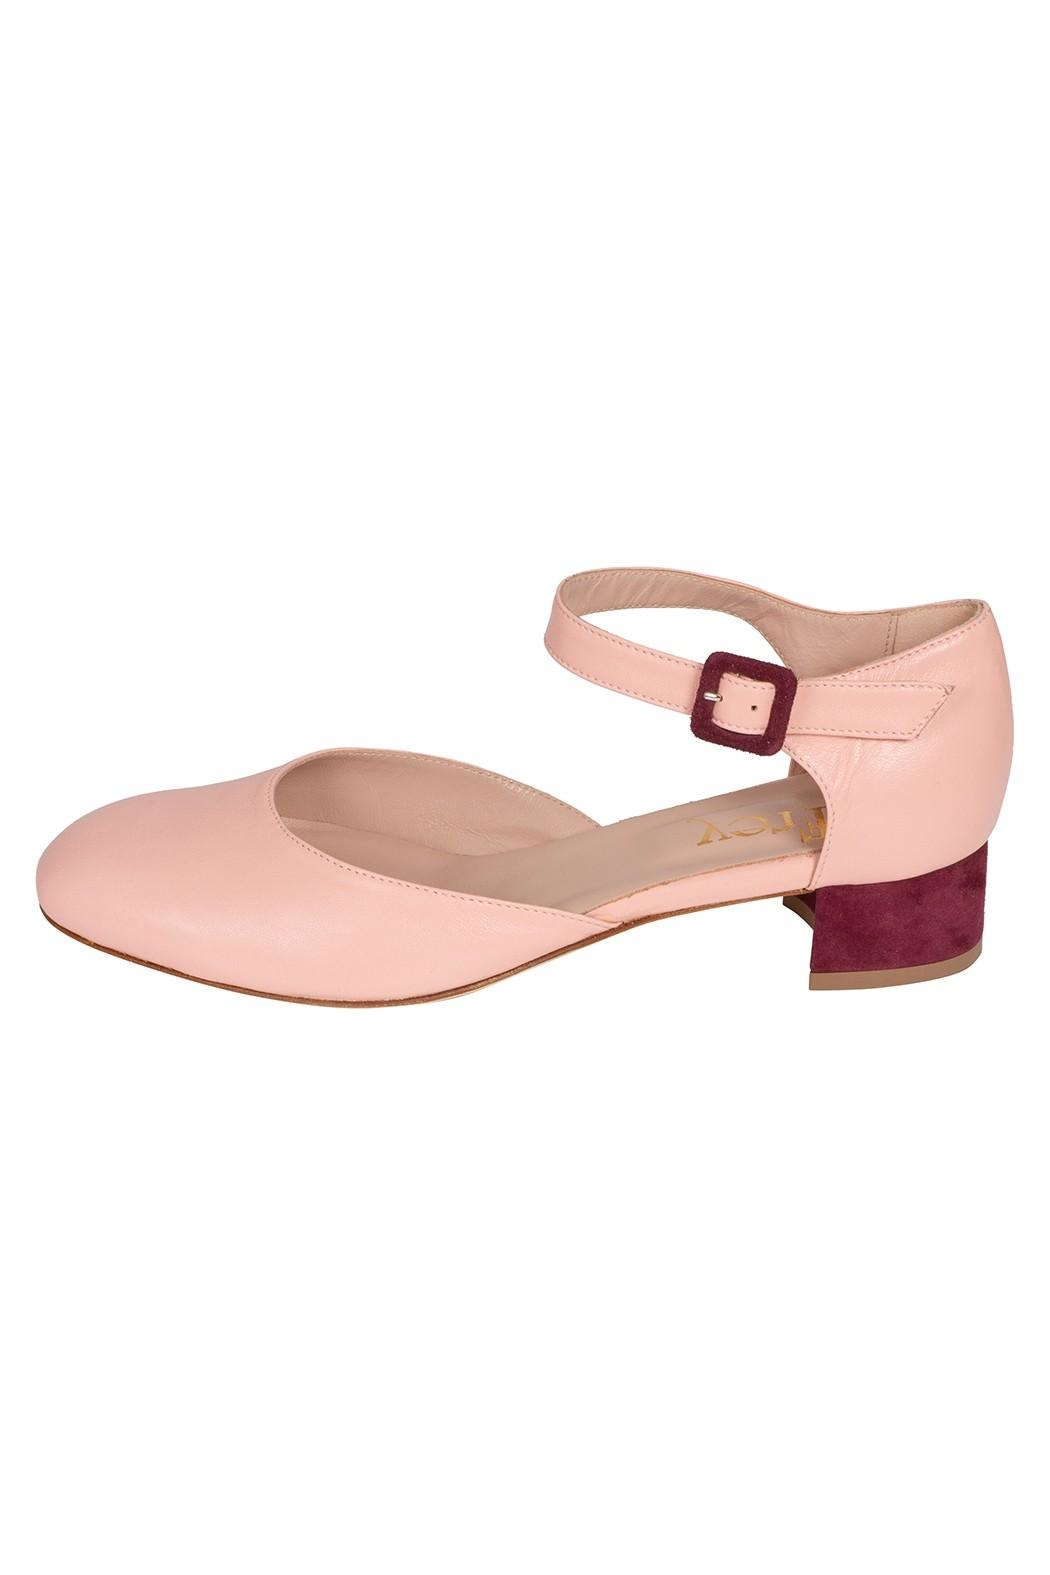 Pascucci Leather, Mary-Janes, Heels - Main Image